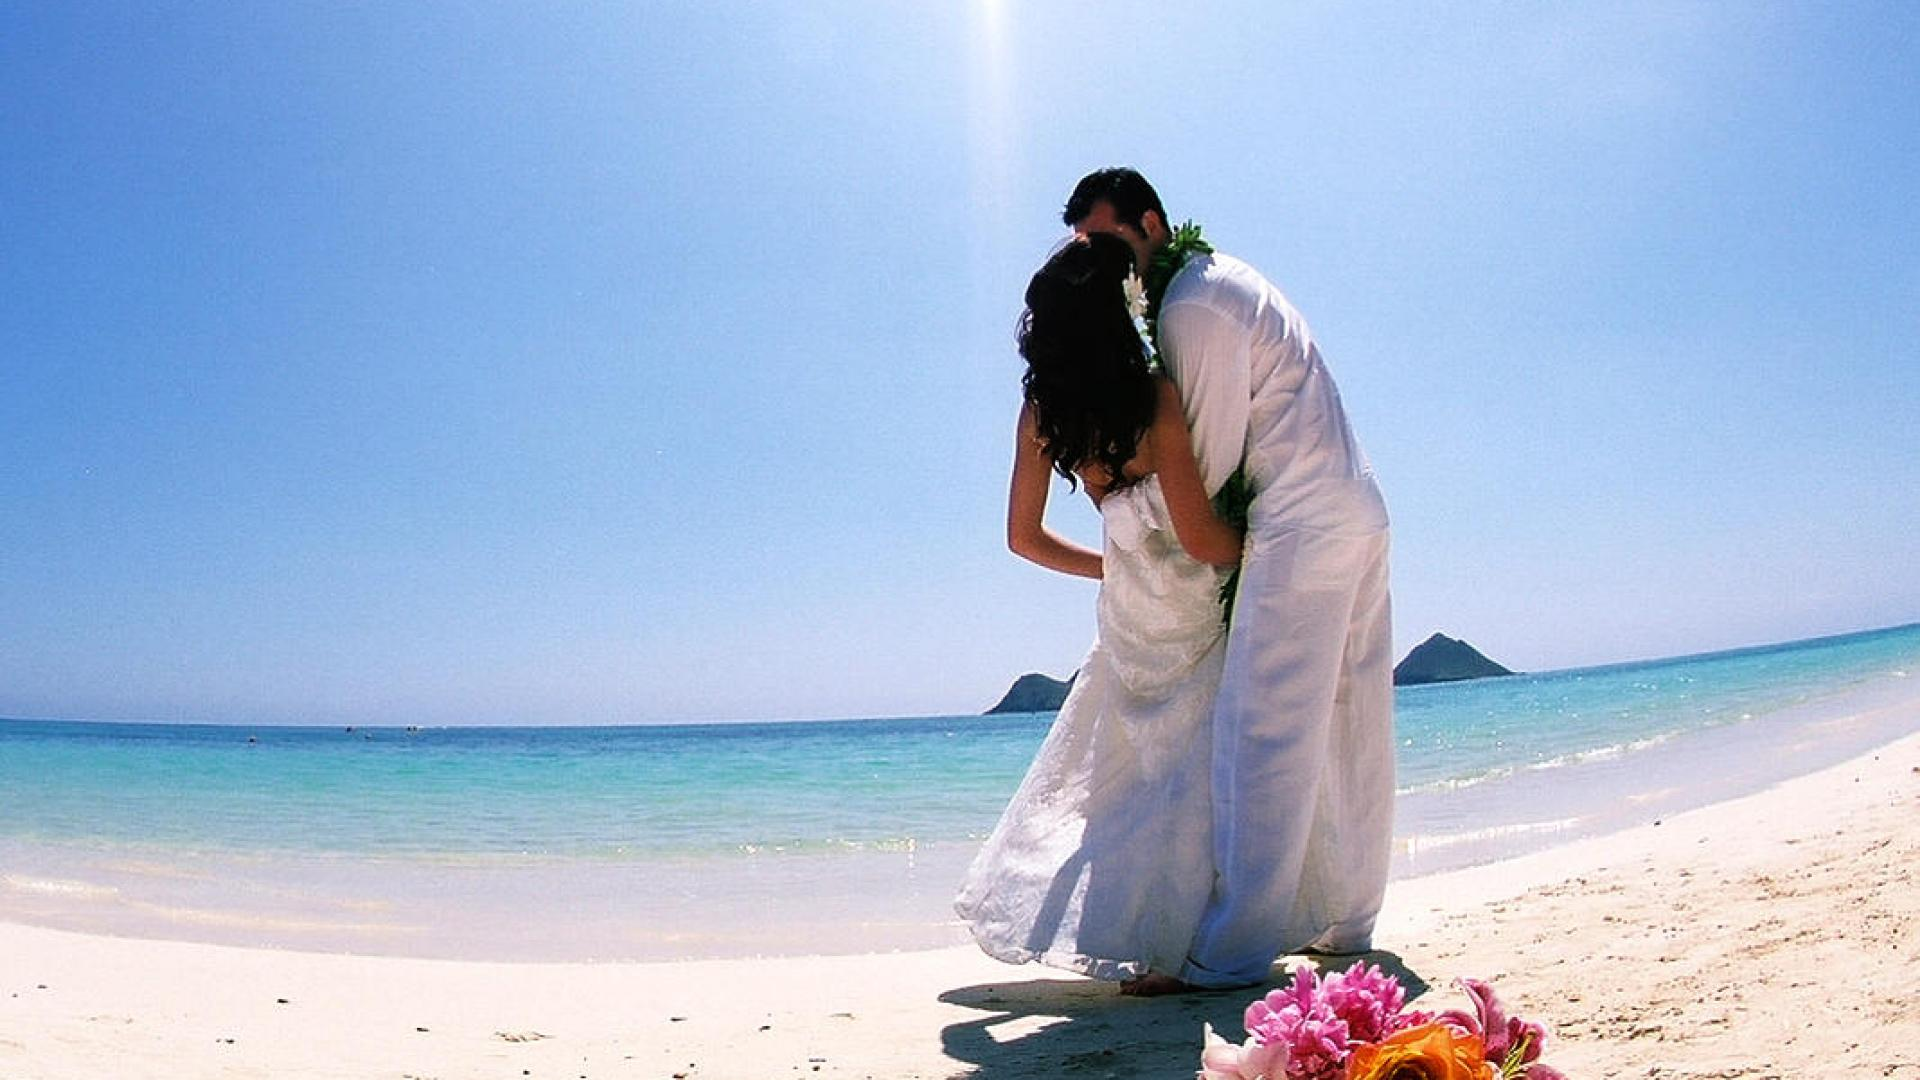 Hawaii-Beach-Wedding-Photos-HD-Wallpaper